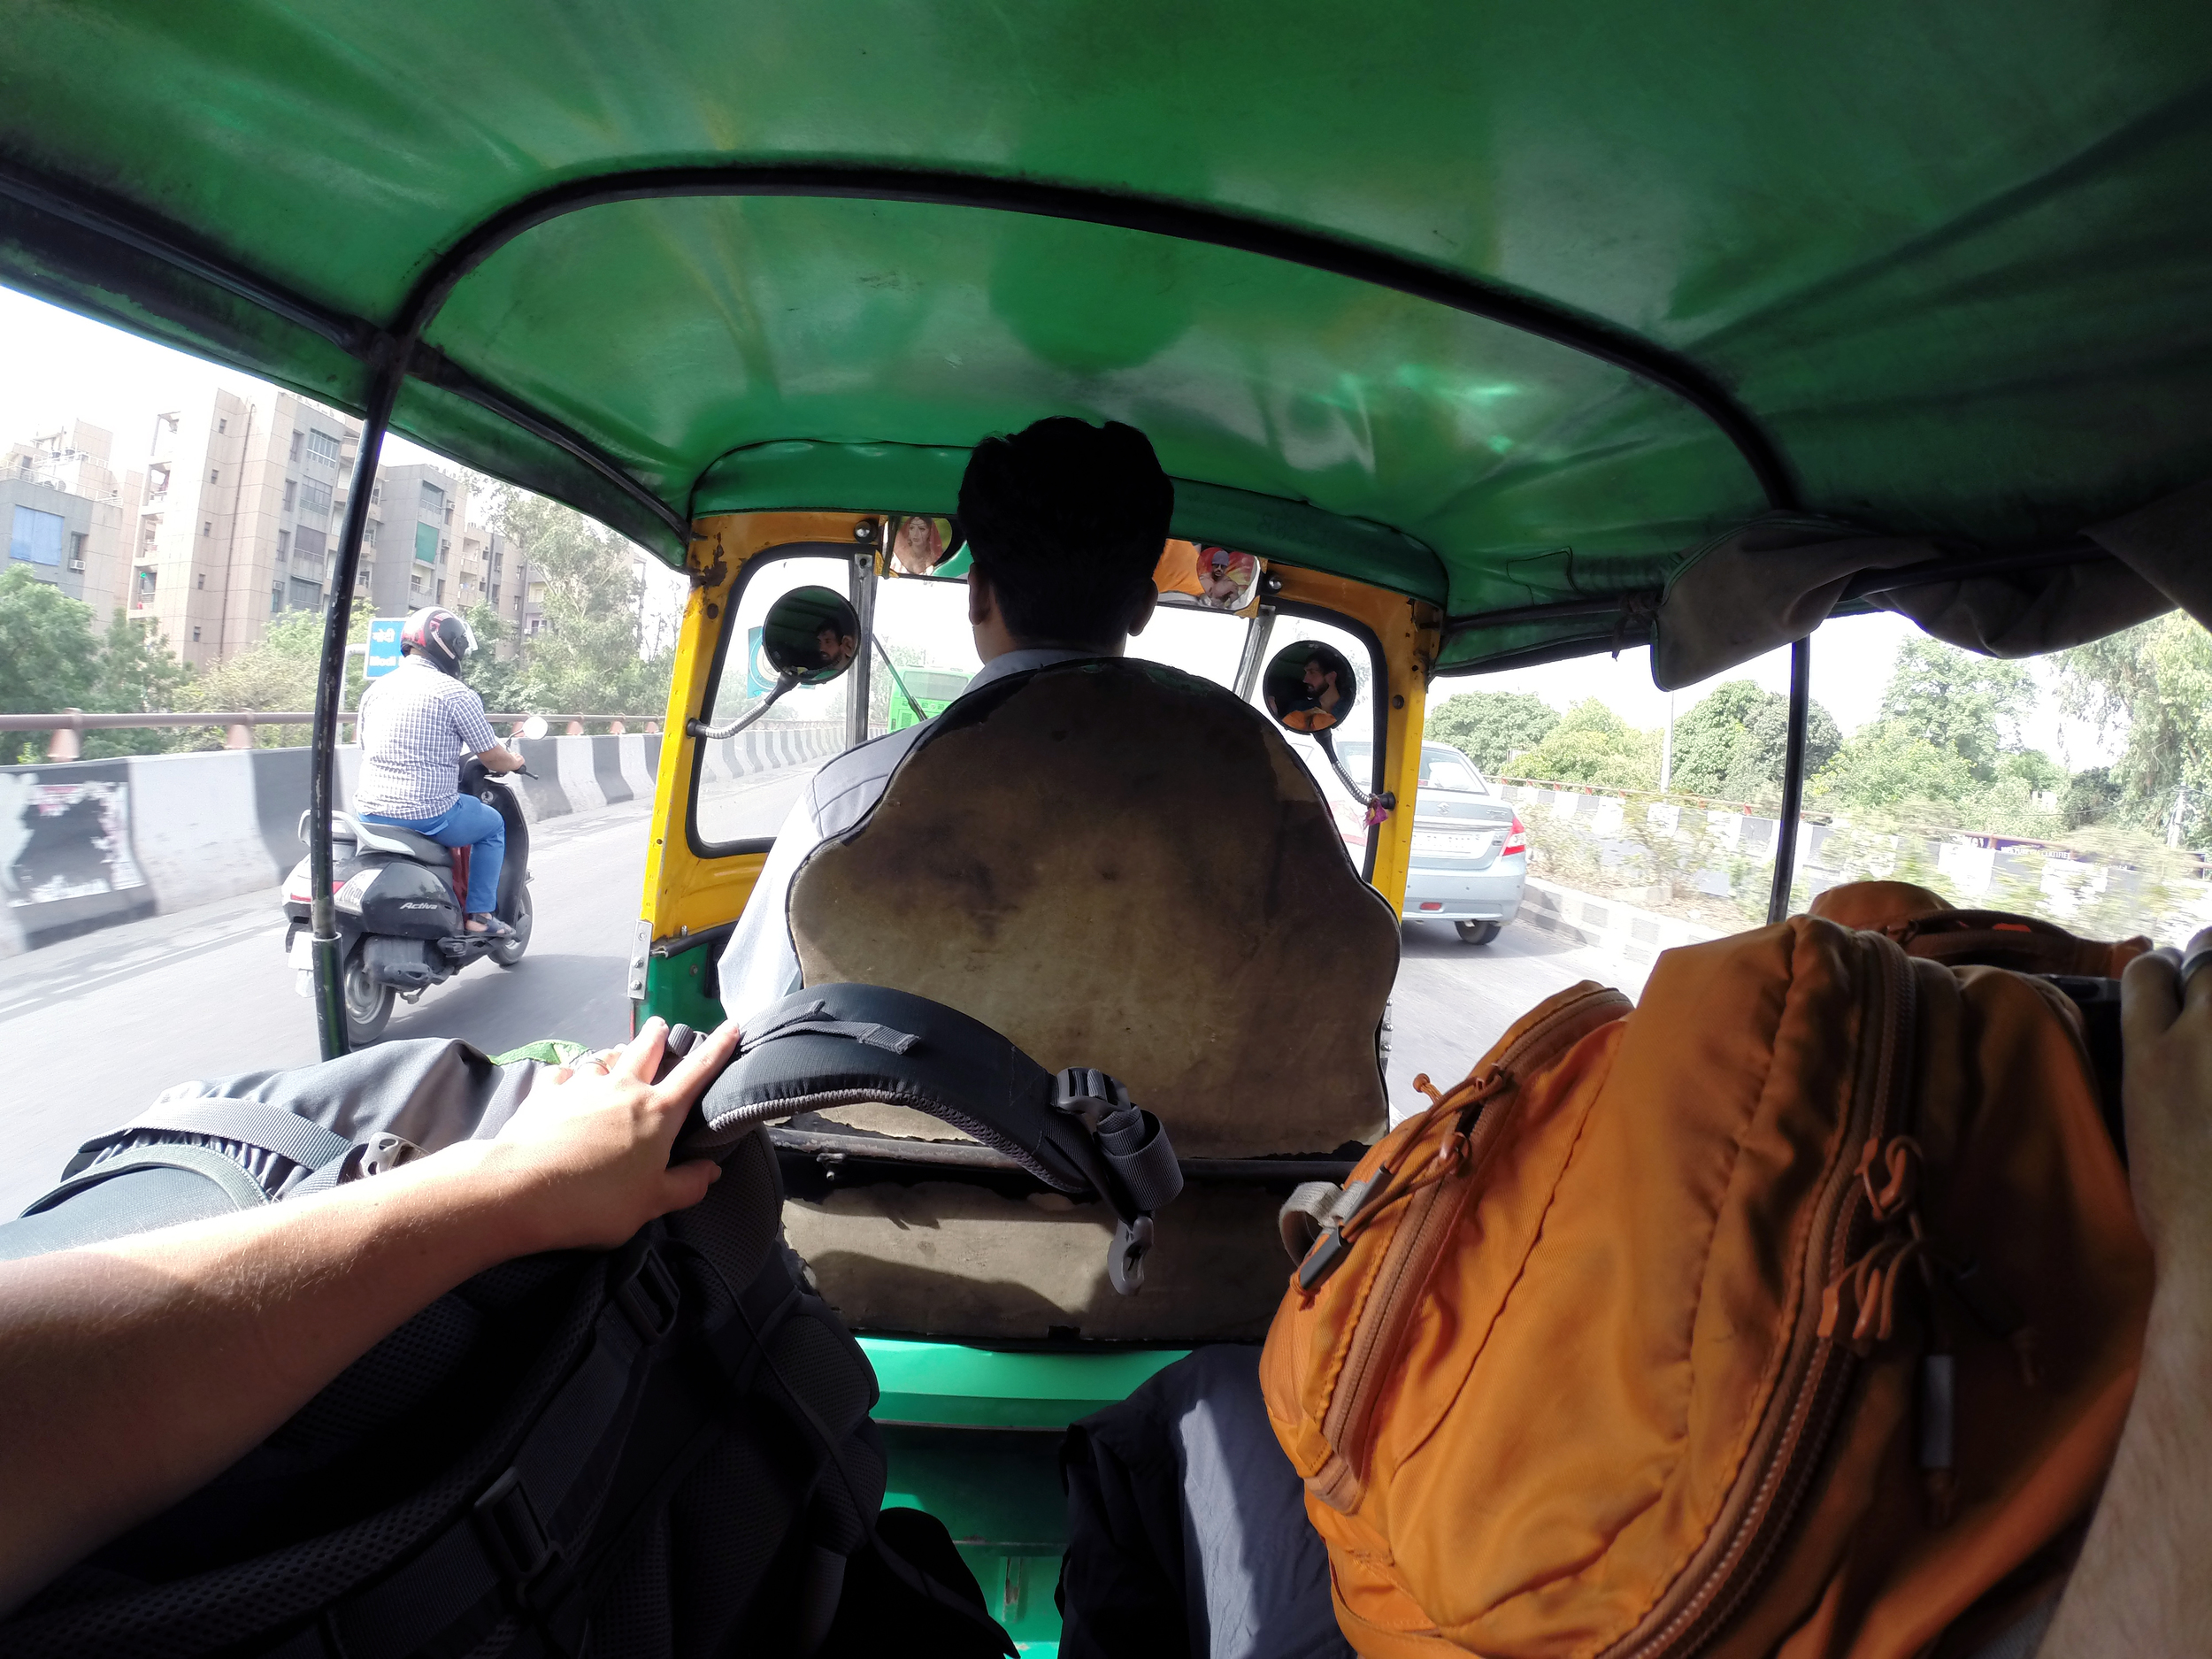 Taking a rickshaw across Delhi from the metro station to our hotel